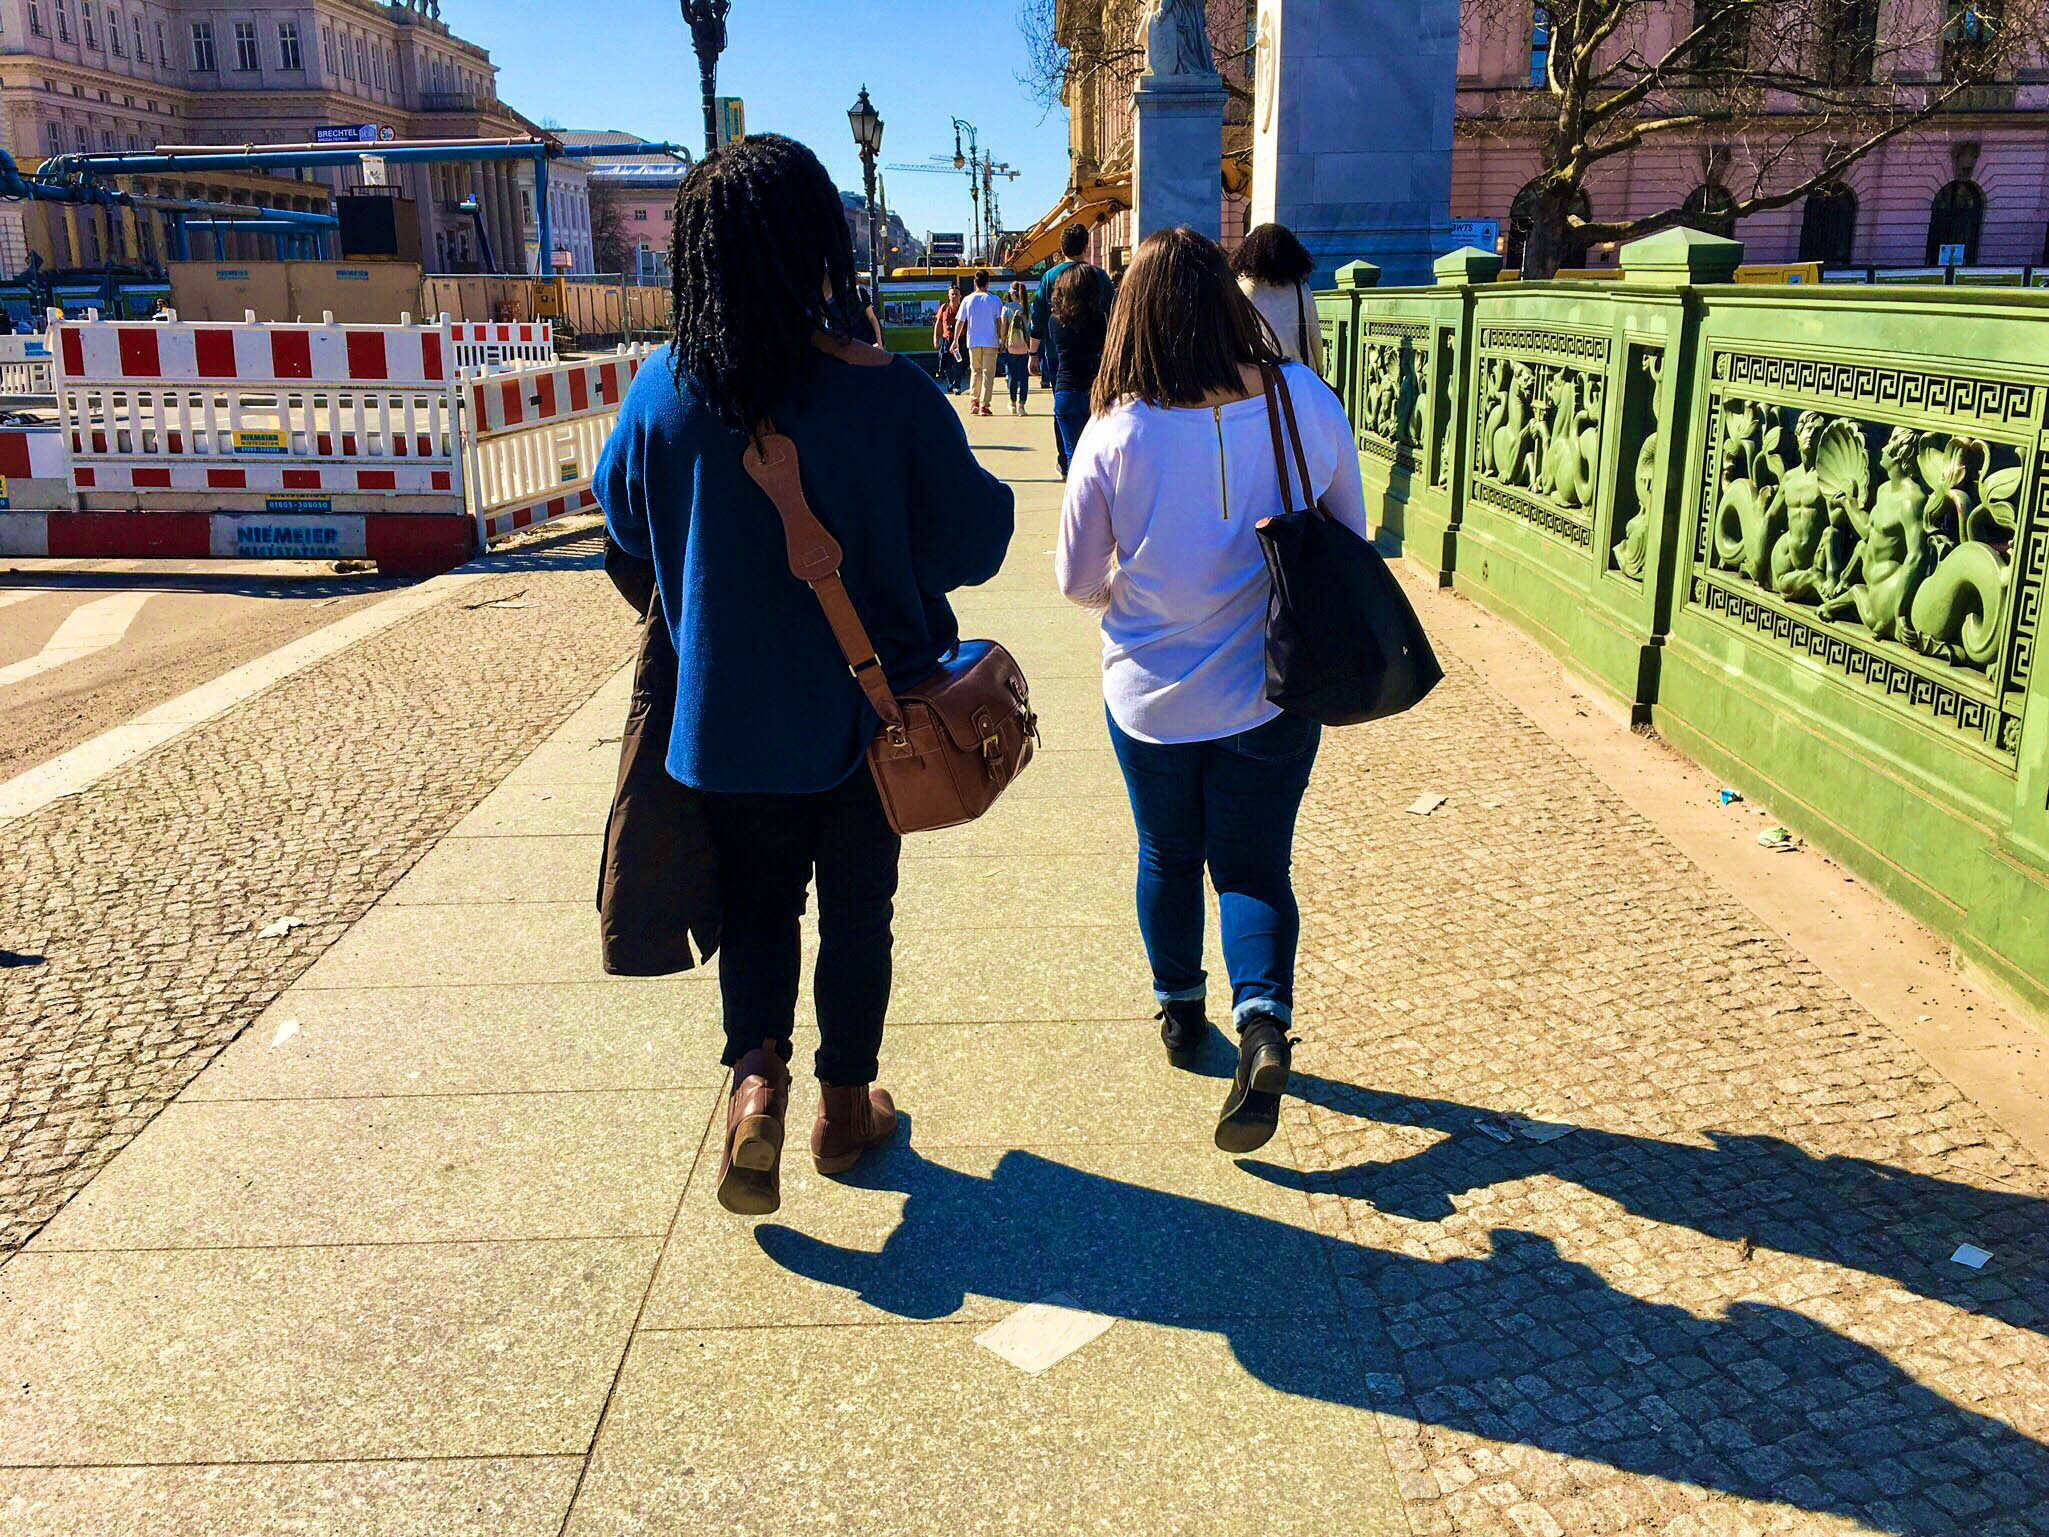 How to Find Your Travel Buddy • Sojournies